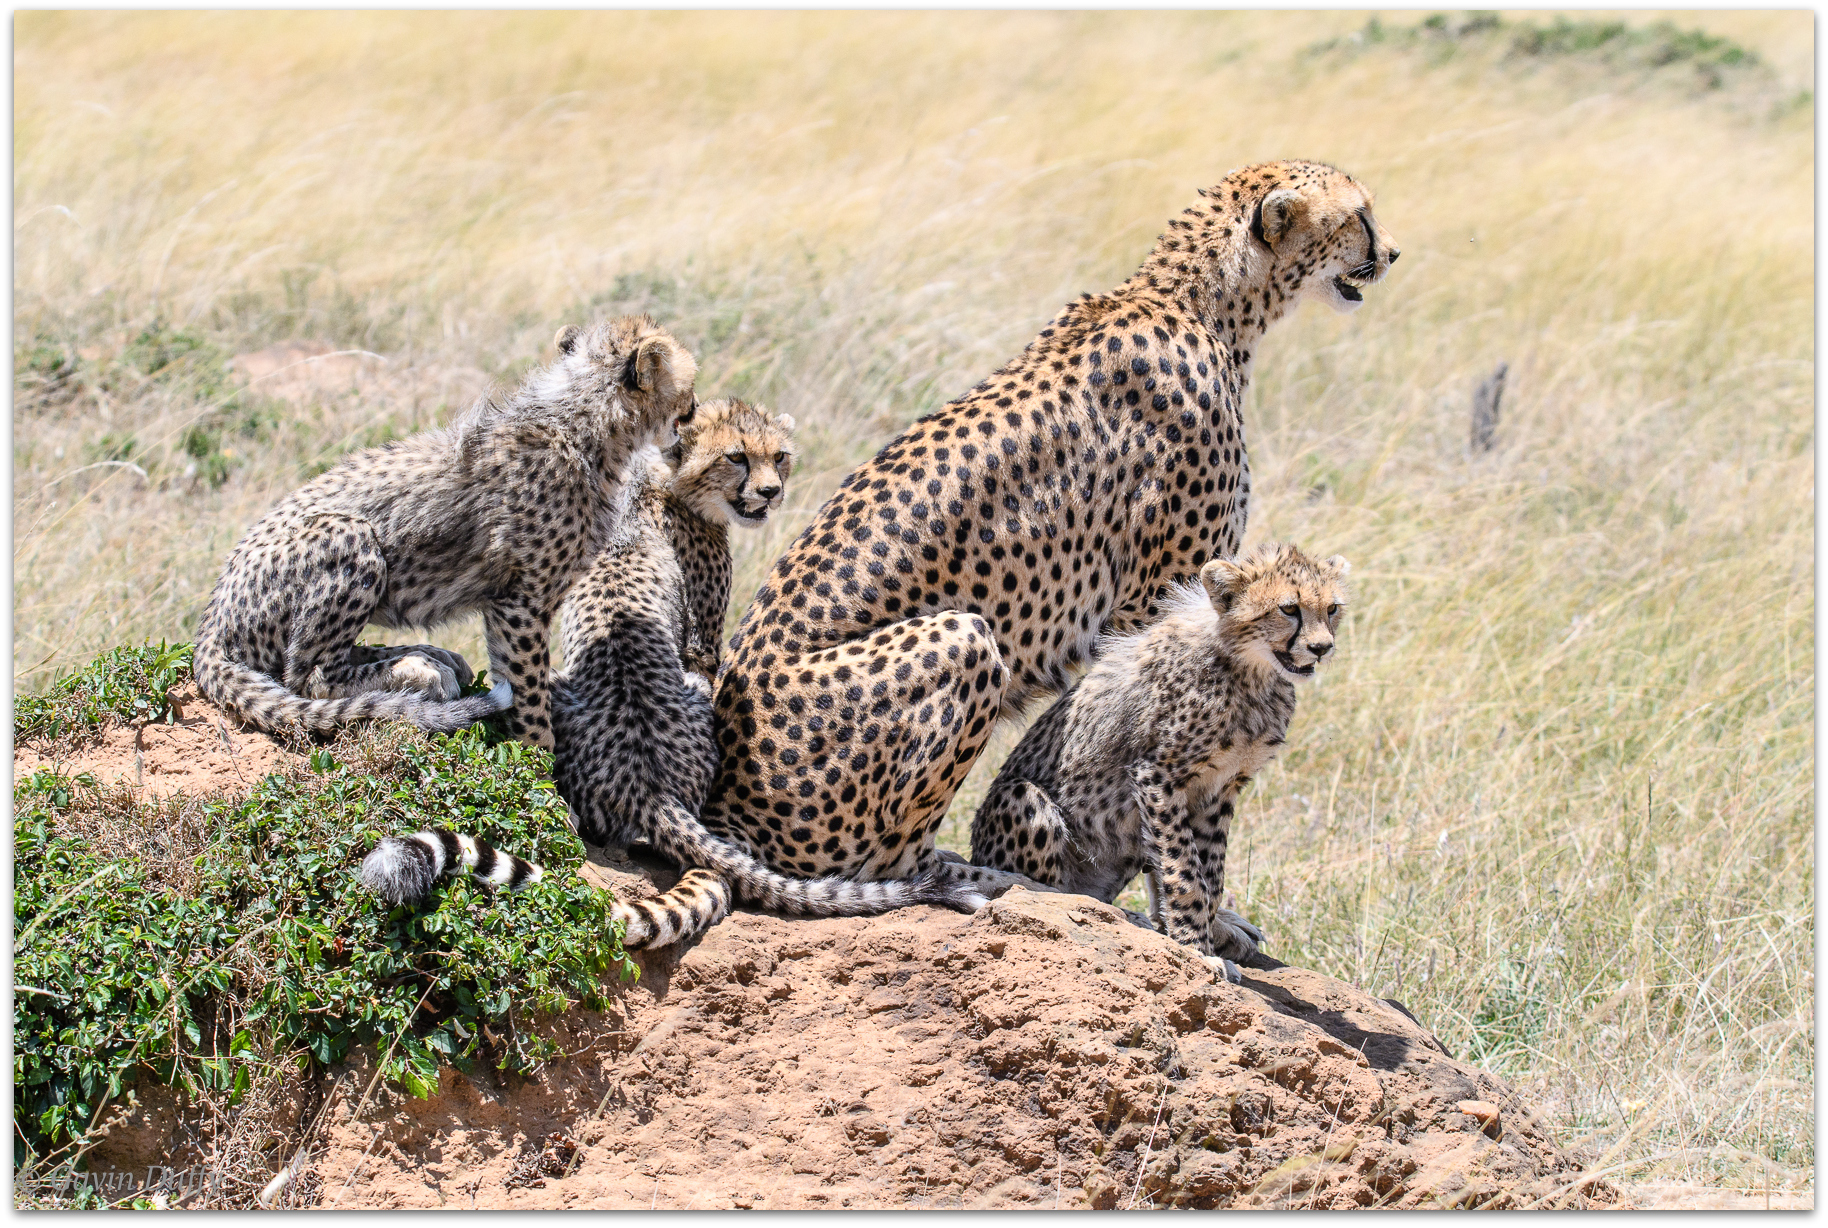 Cheetah mother and cubs on a termite hill looking for potential prey © Gavin Duffy